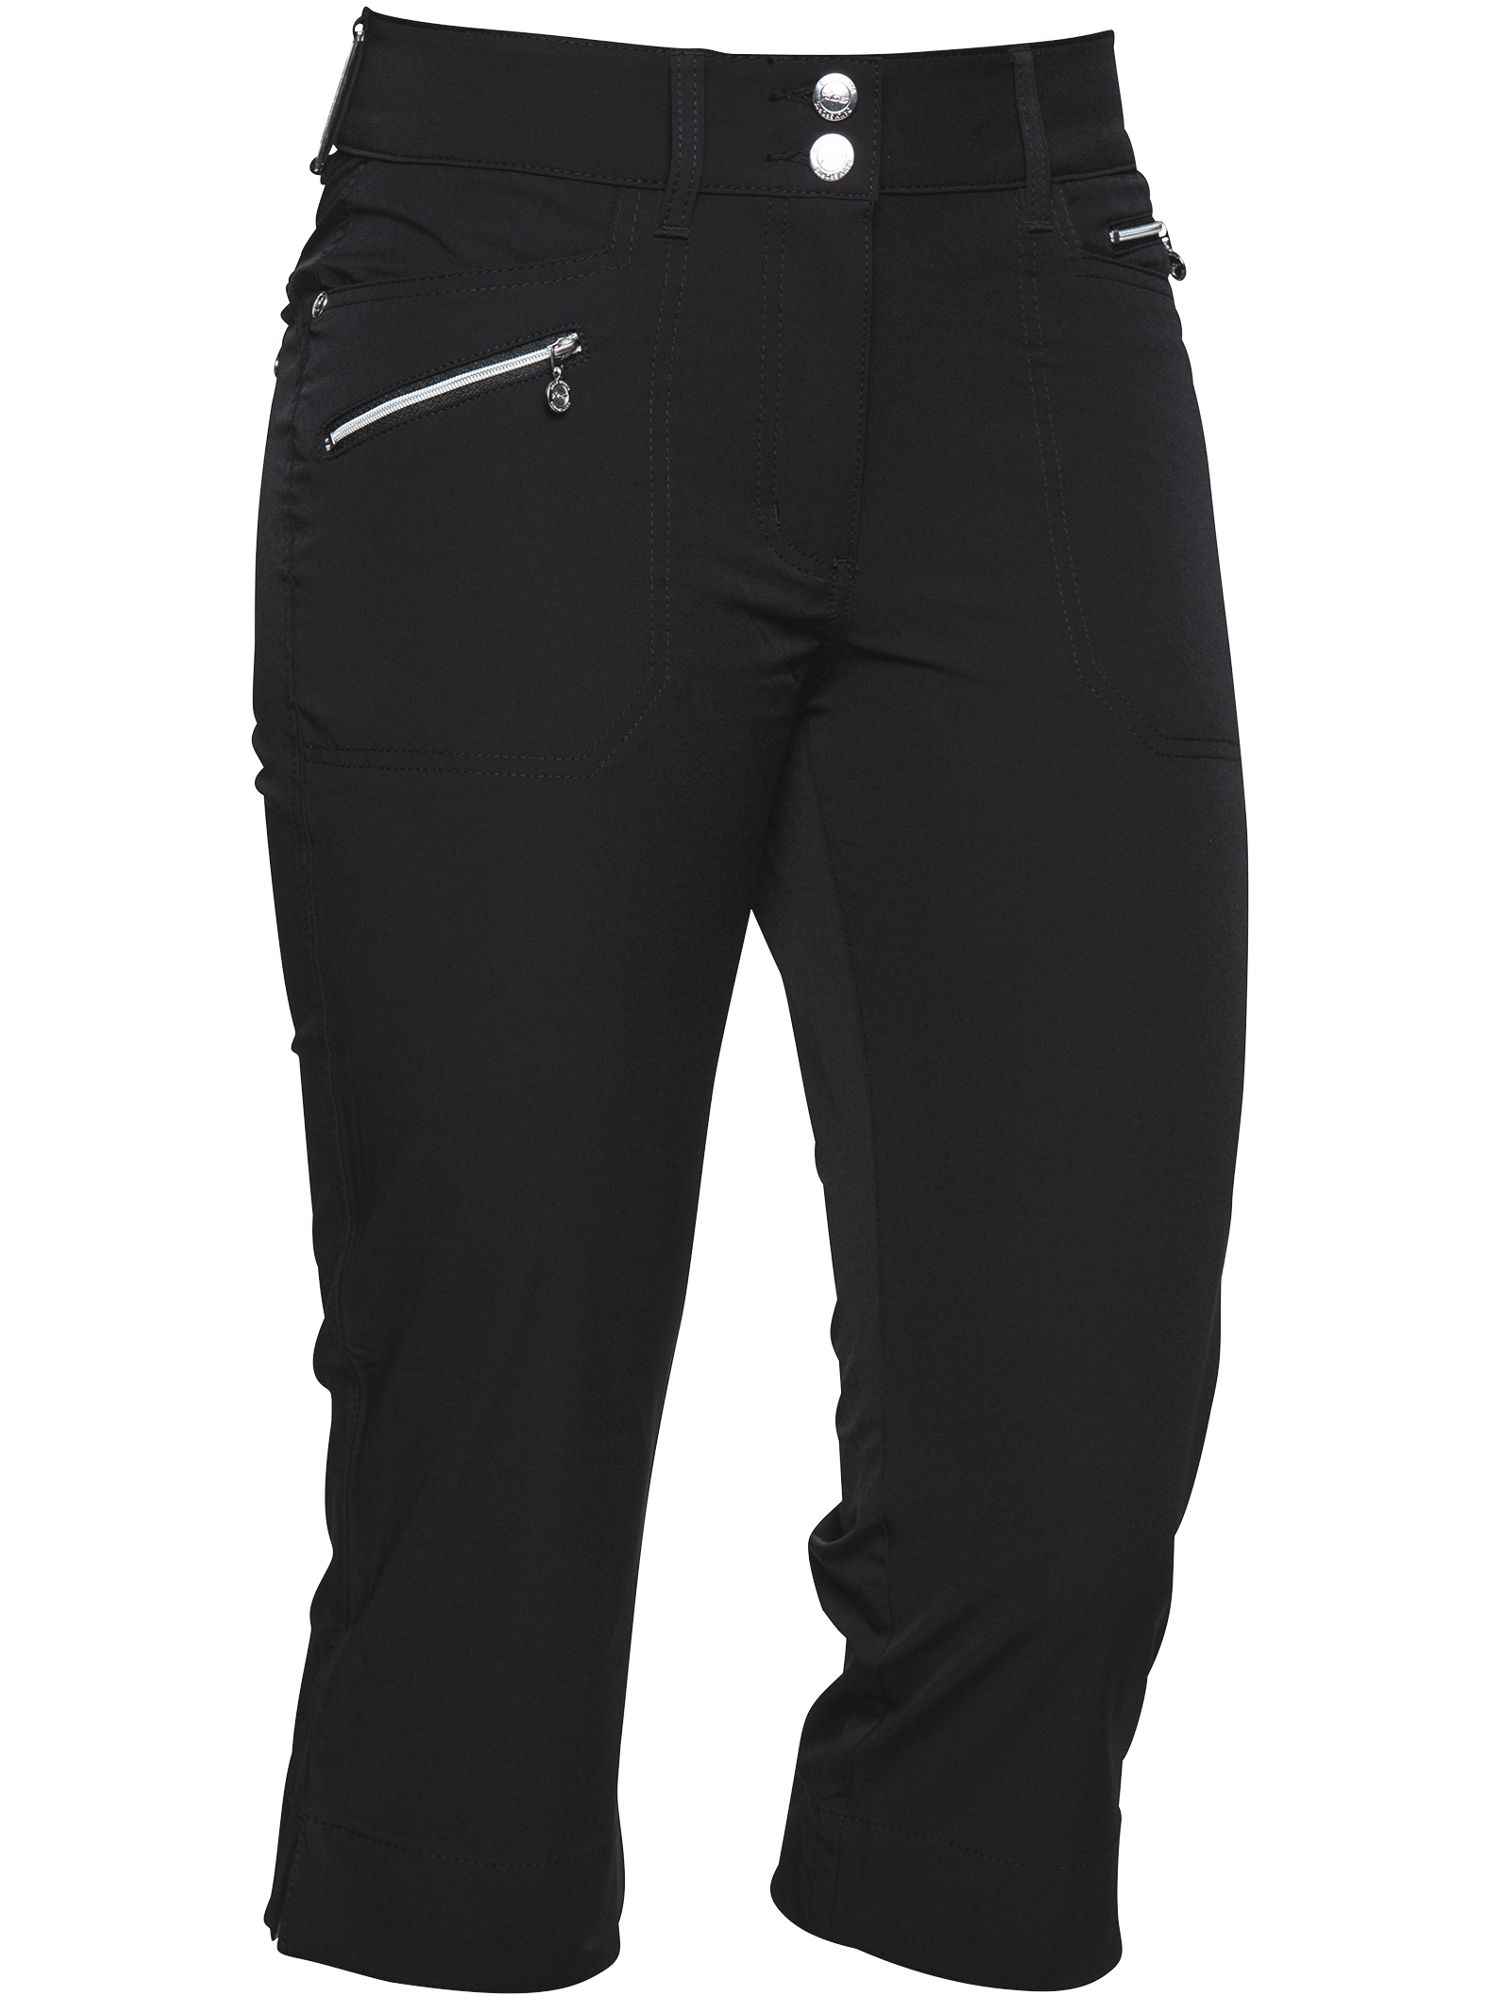 Daily Sports Miracle capri, Black